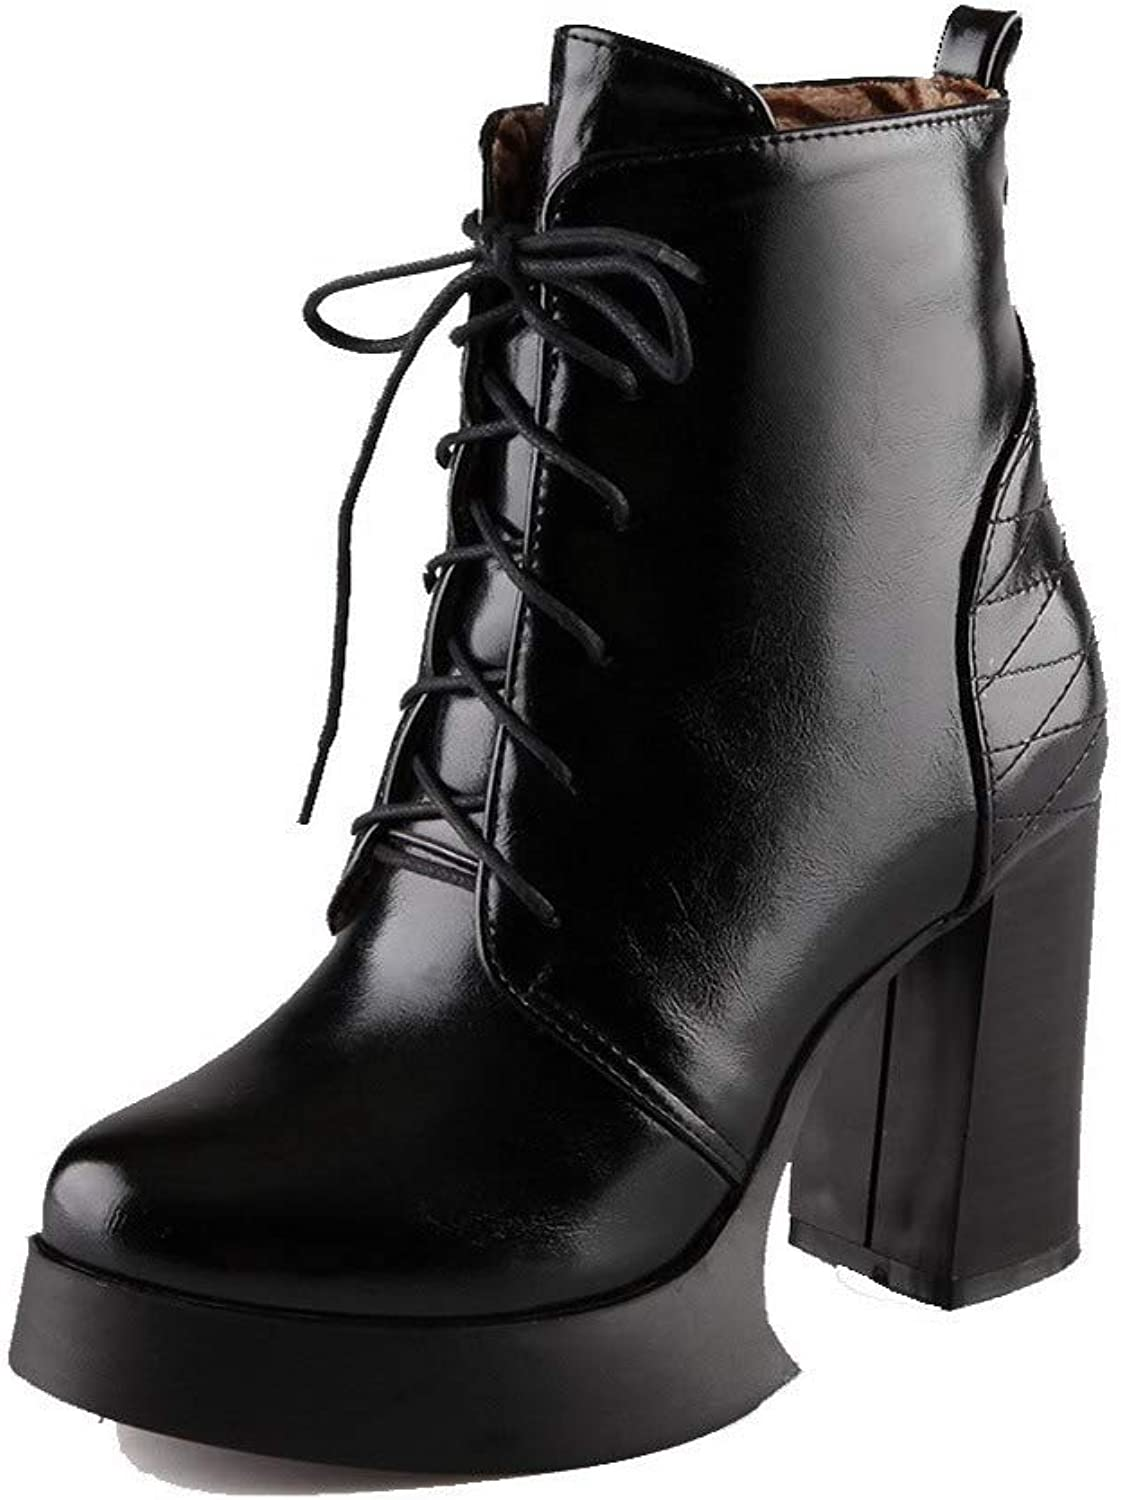 AllhqFashion Women's Solid Pu High-Heels Lace-Up Closed-Toe Boots, FBUXD122663